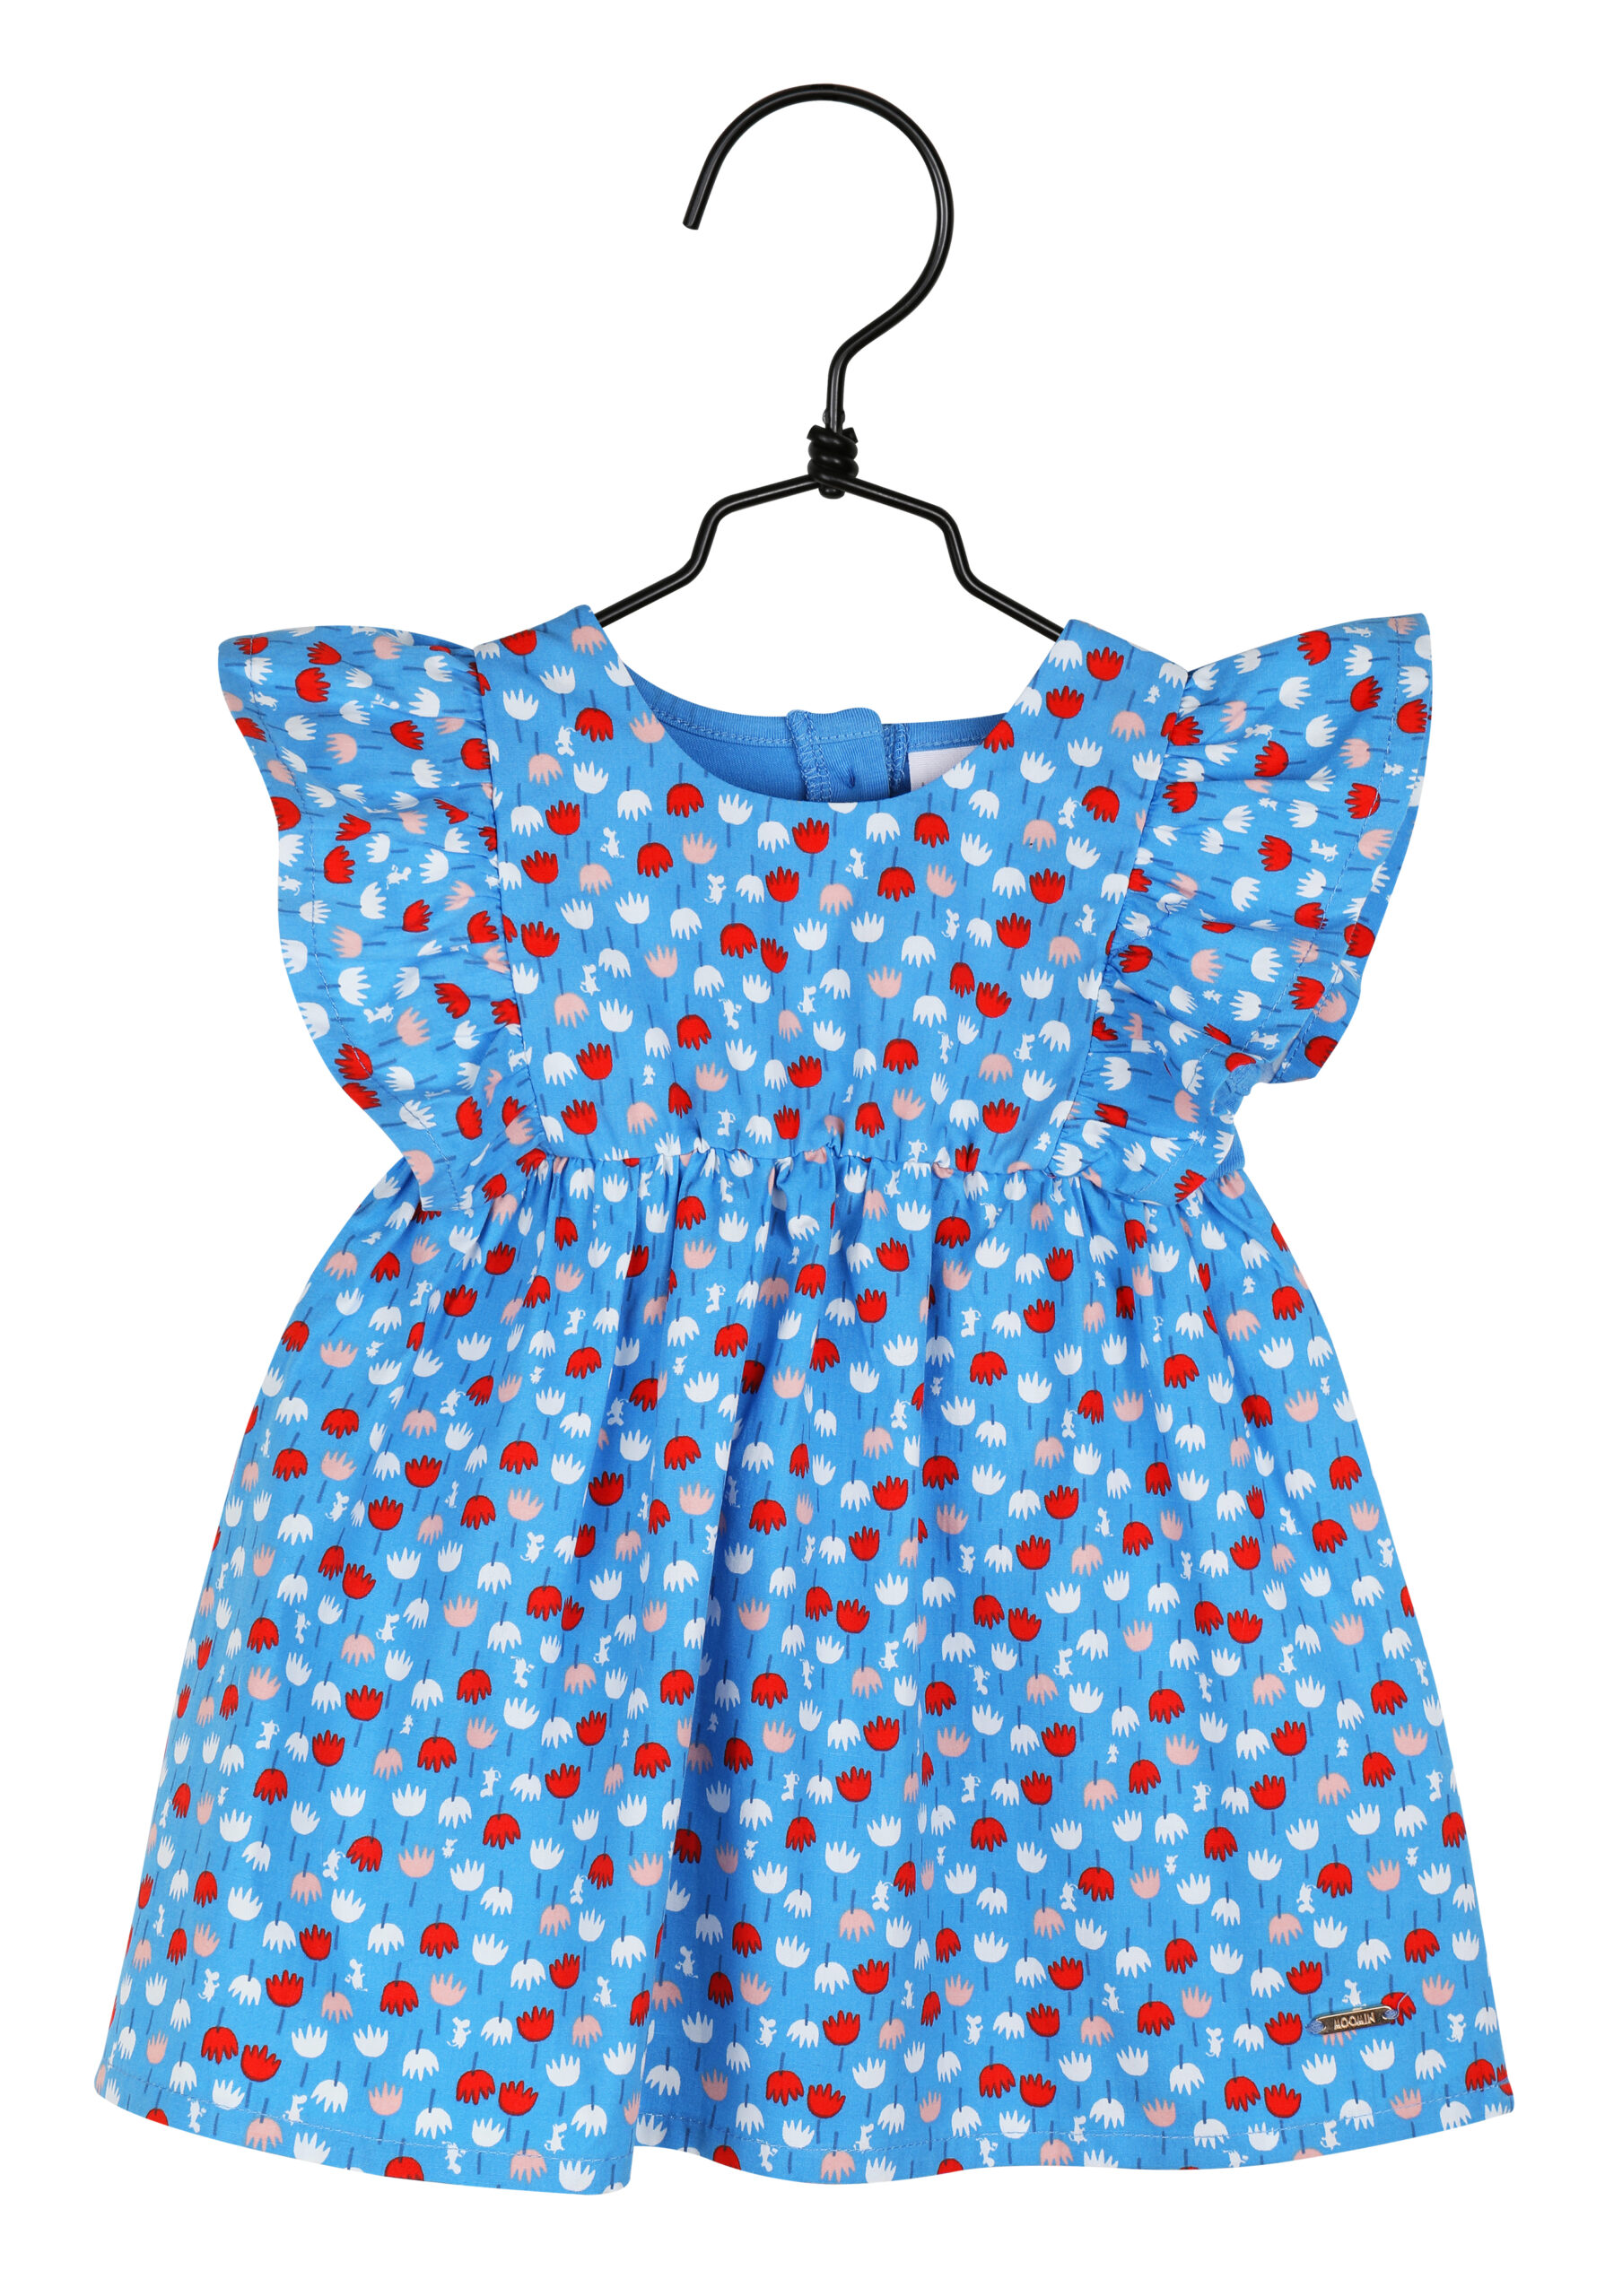 Martinex Moomin Miniflower Dress Baby Blue